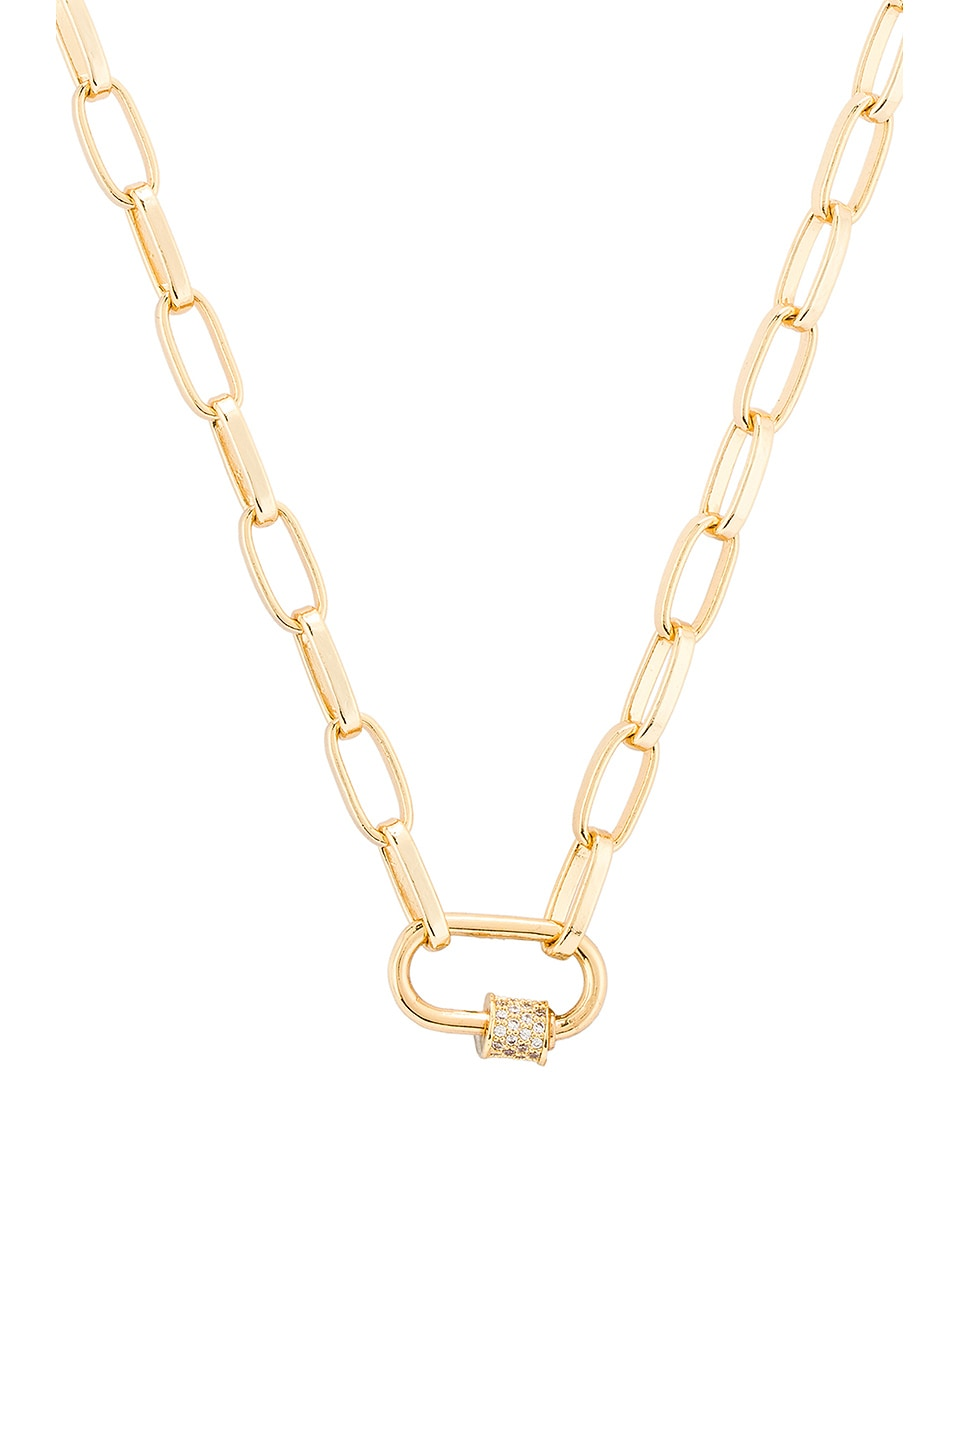 Natalie B Jewelry Naia Necklace in Gold